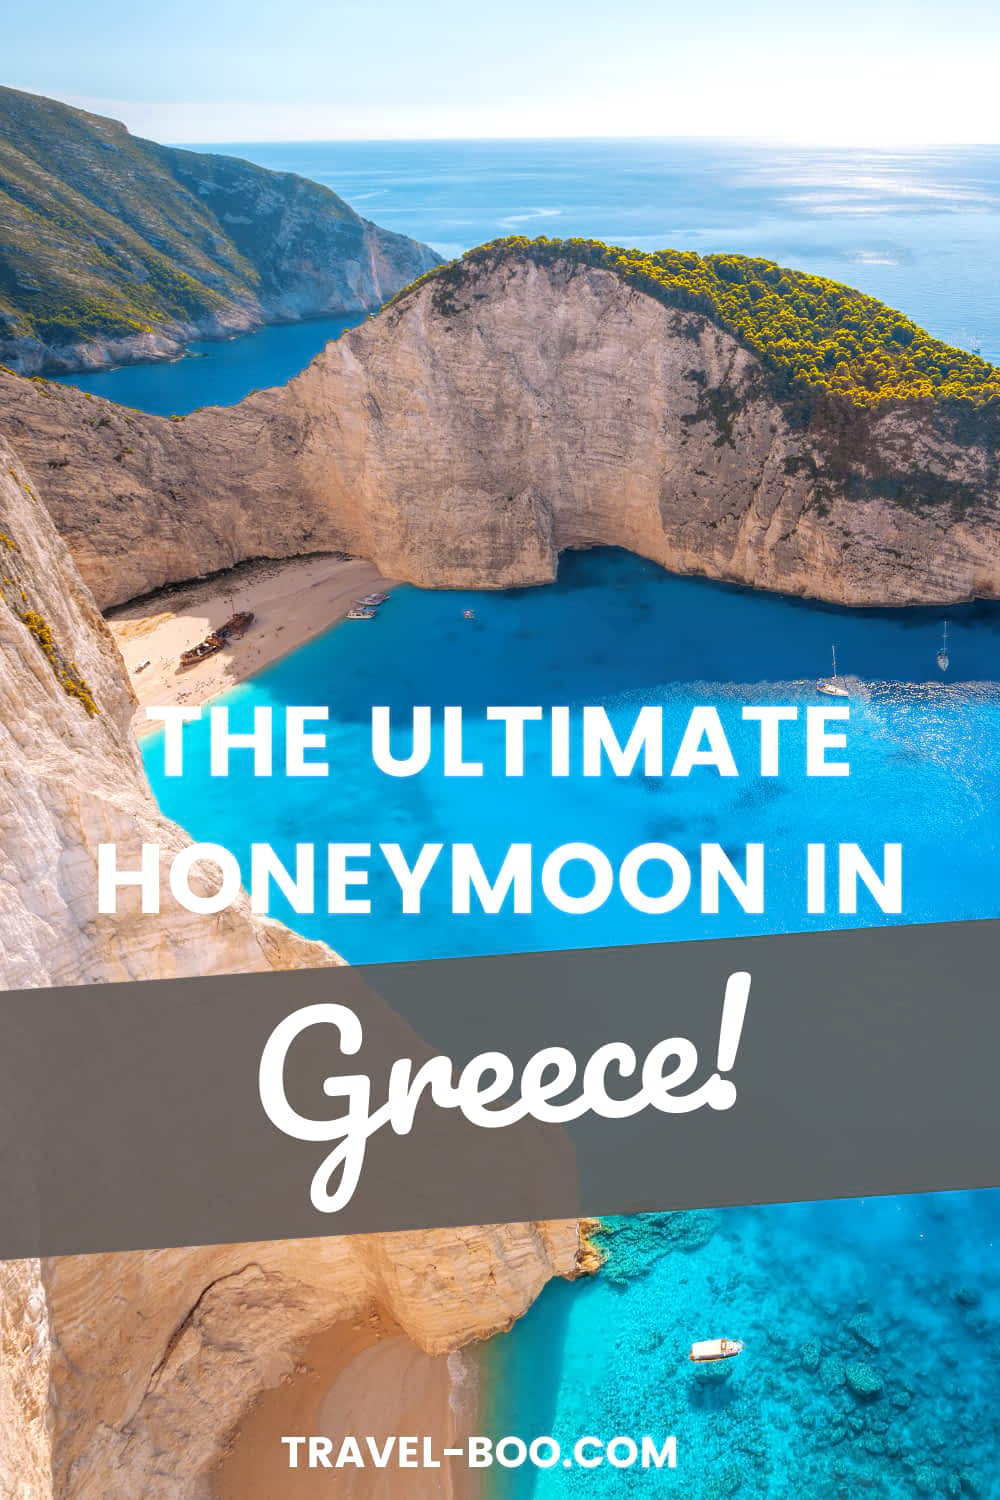 Planning a romantic honeymoon to Greece? Don't miss these 8 spectacular Greece Honeymoon Destinations! Greece Travel Islands, Greece Travel, Greece Travel Guide, Santorini Travel, Mykonos Travel, Greece Vacation, Athens Greece Travel, Greece Travel Santorini. #greecetravel #santorinigreece #mykonosgreece #athensgreece